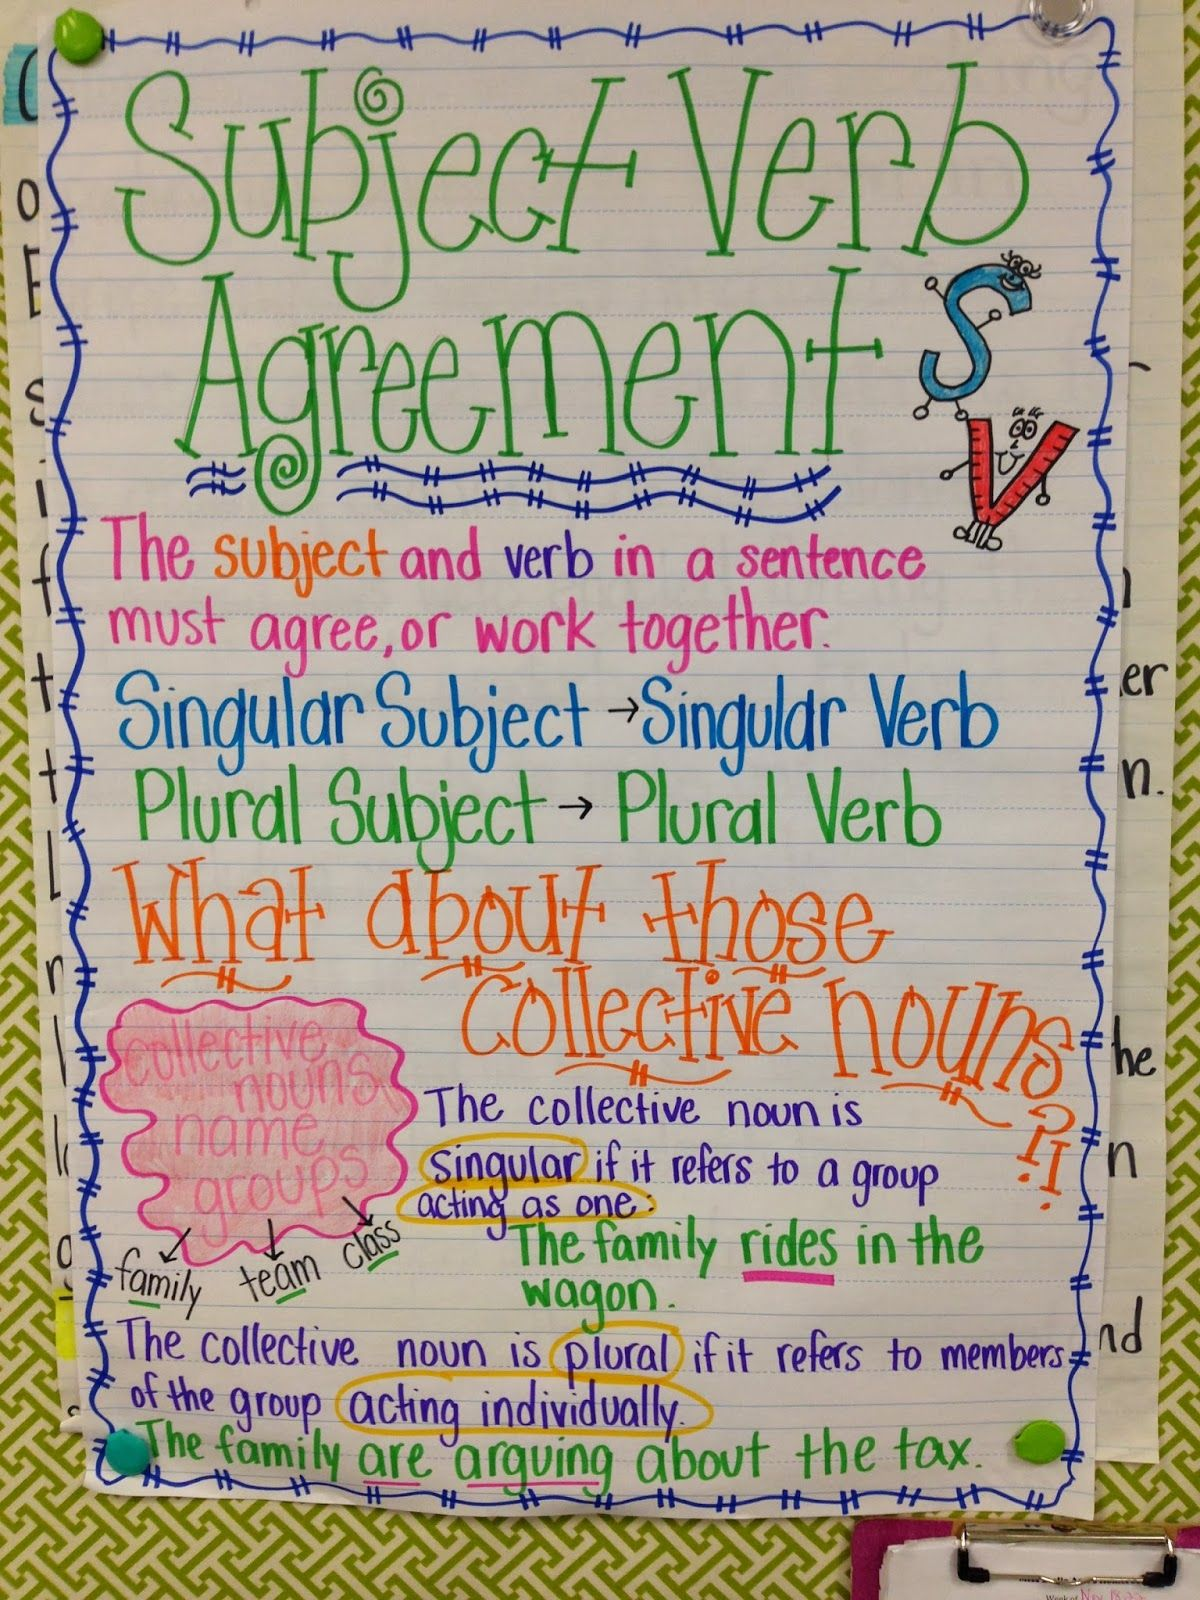 Subject verb agreement anchor chart google search going to make this tonight also rh pinterest